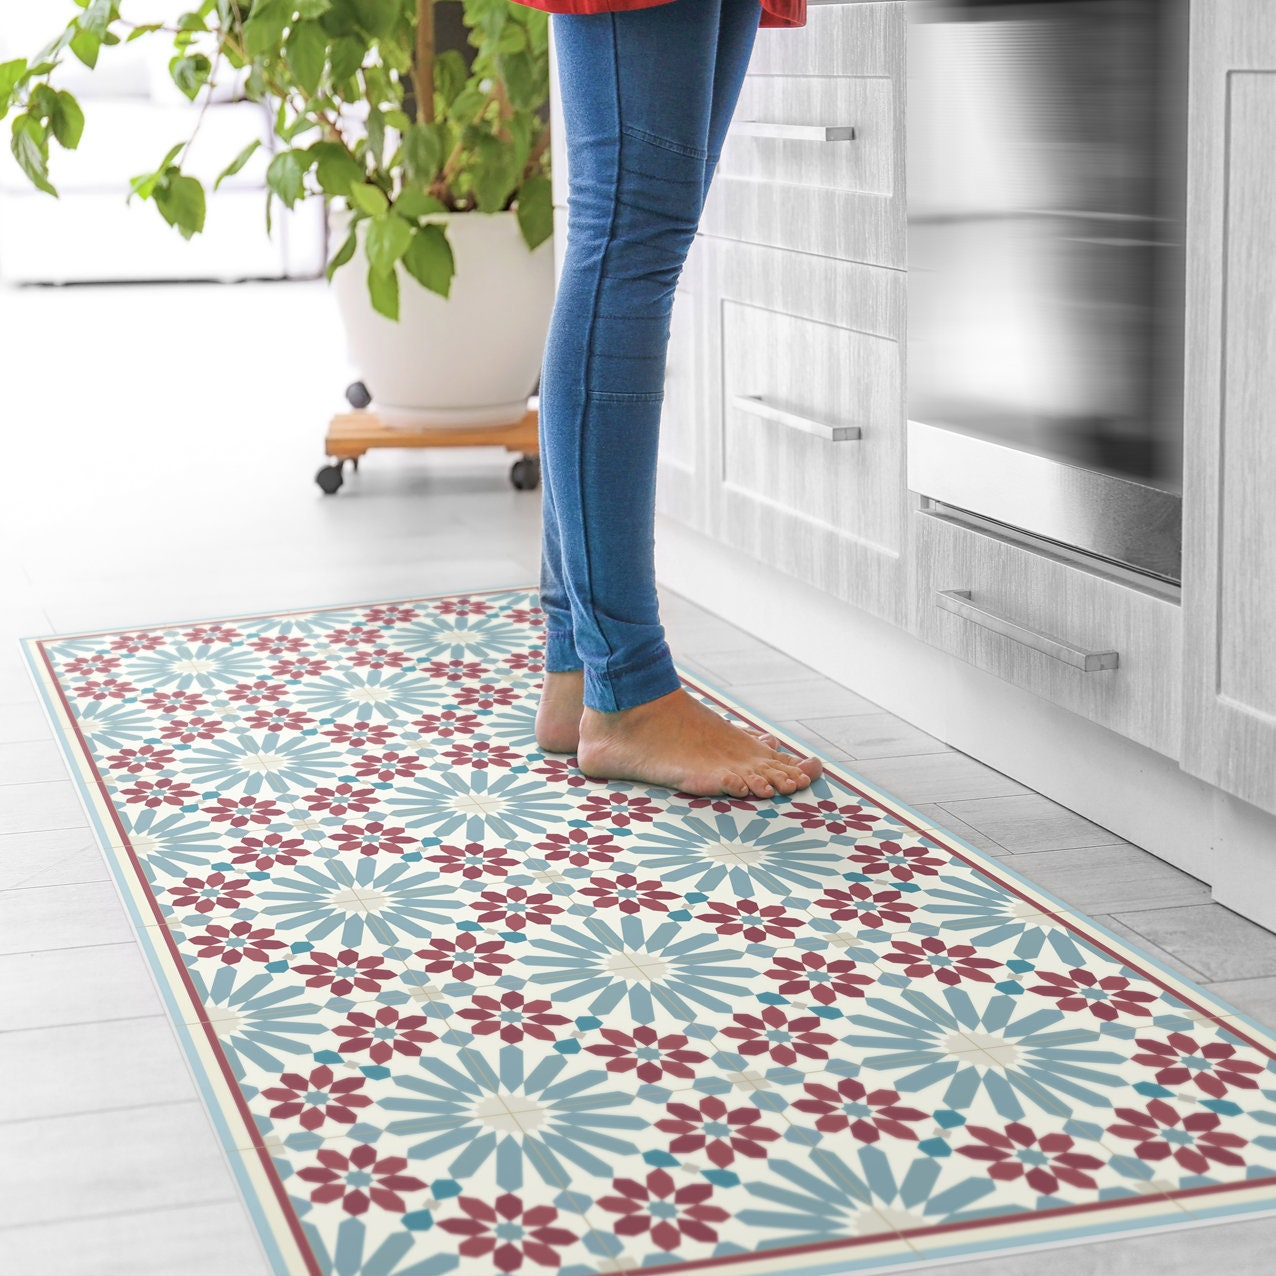 Red and blue kitchen mat. Vinyl floor mat with Moroccan tiles   Etsy